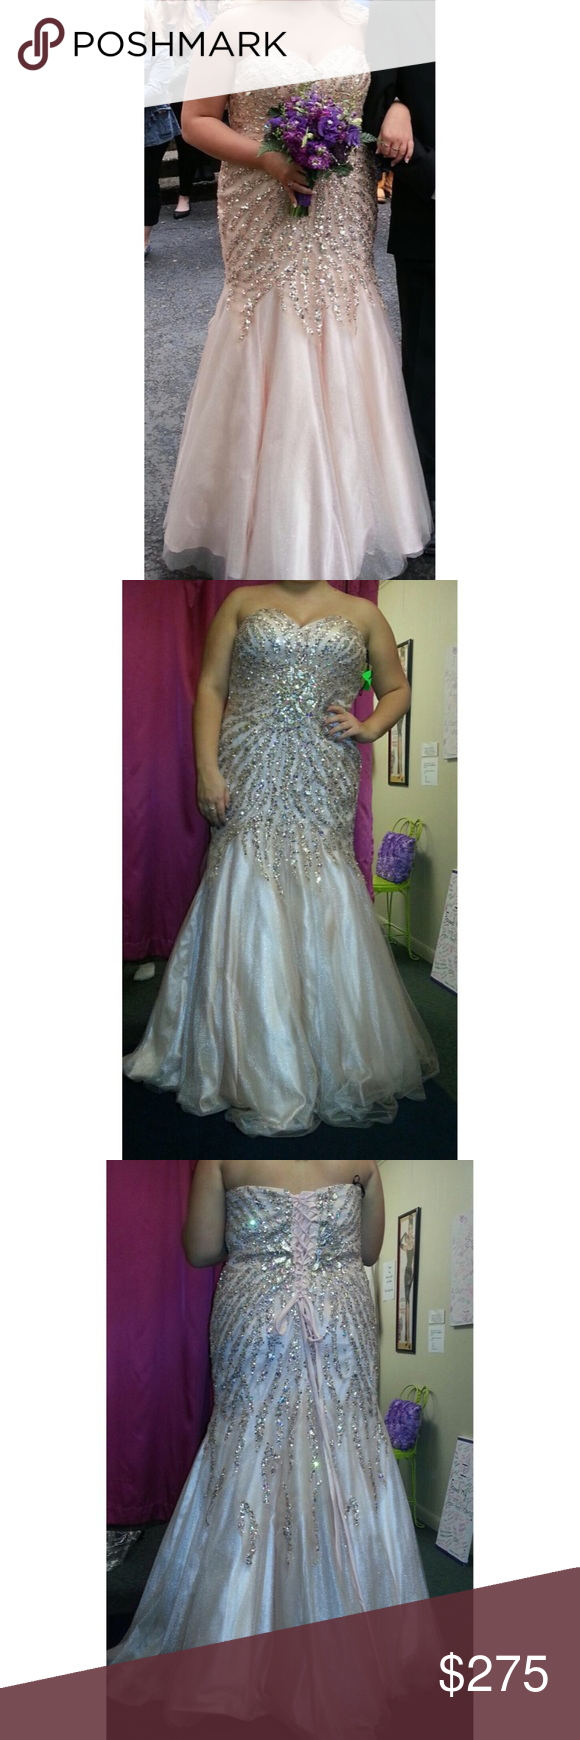 Champagne fit and flare prom gown worn once champagne colour